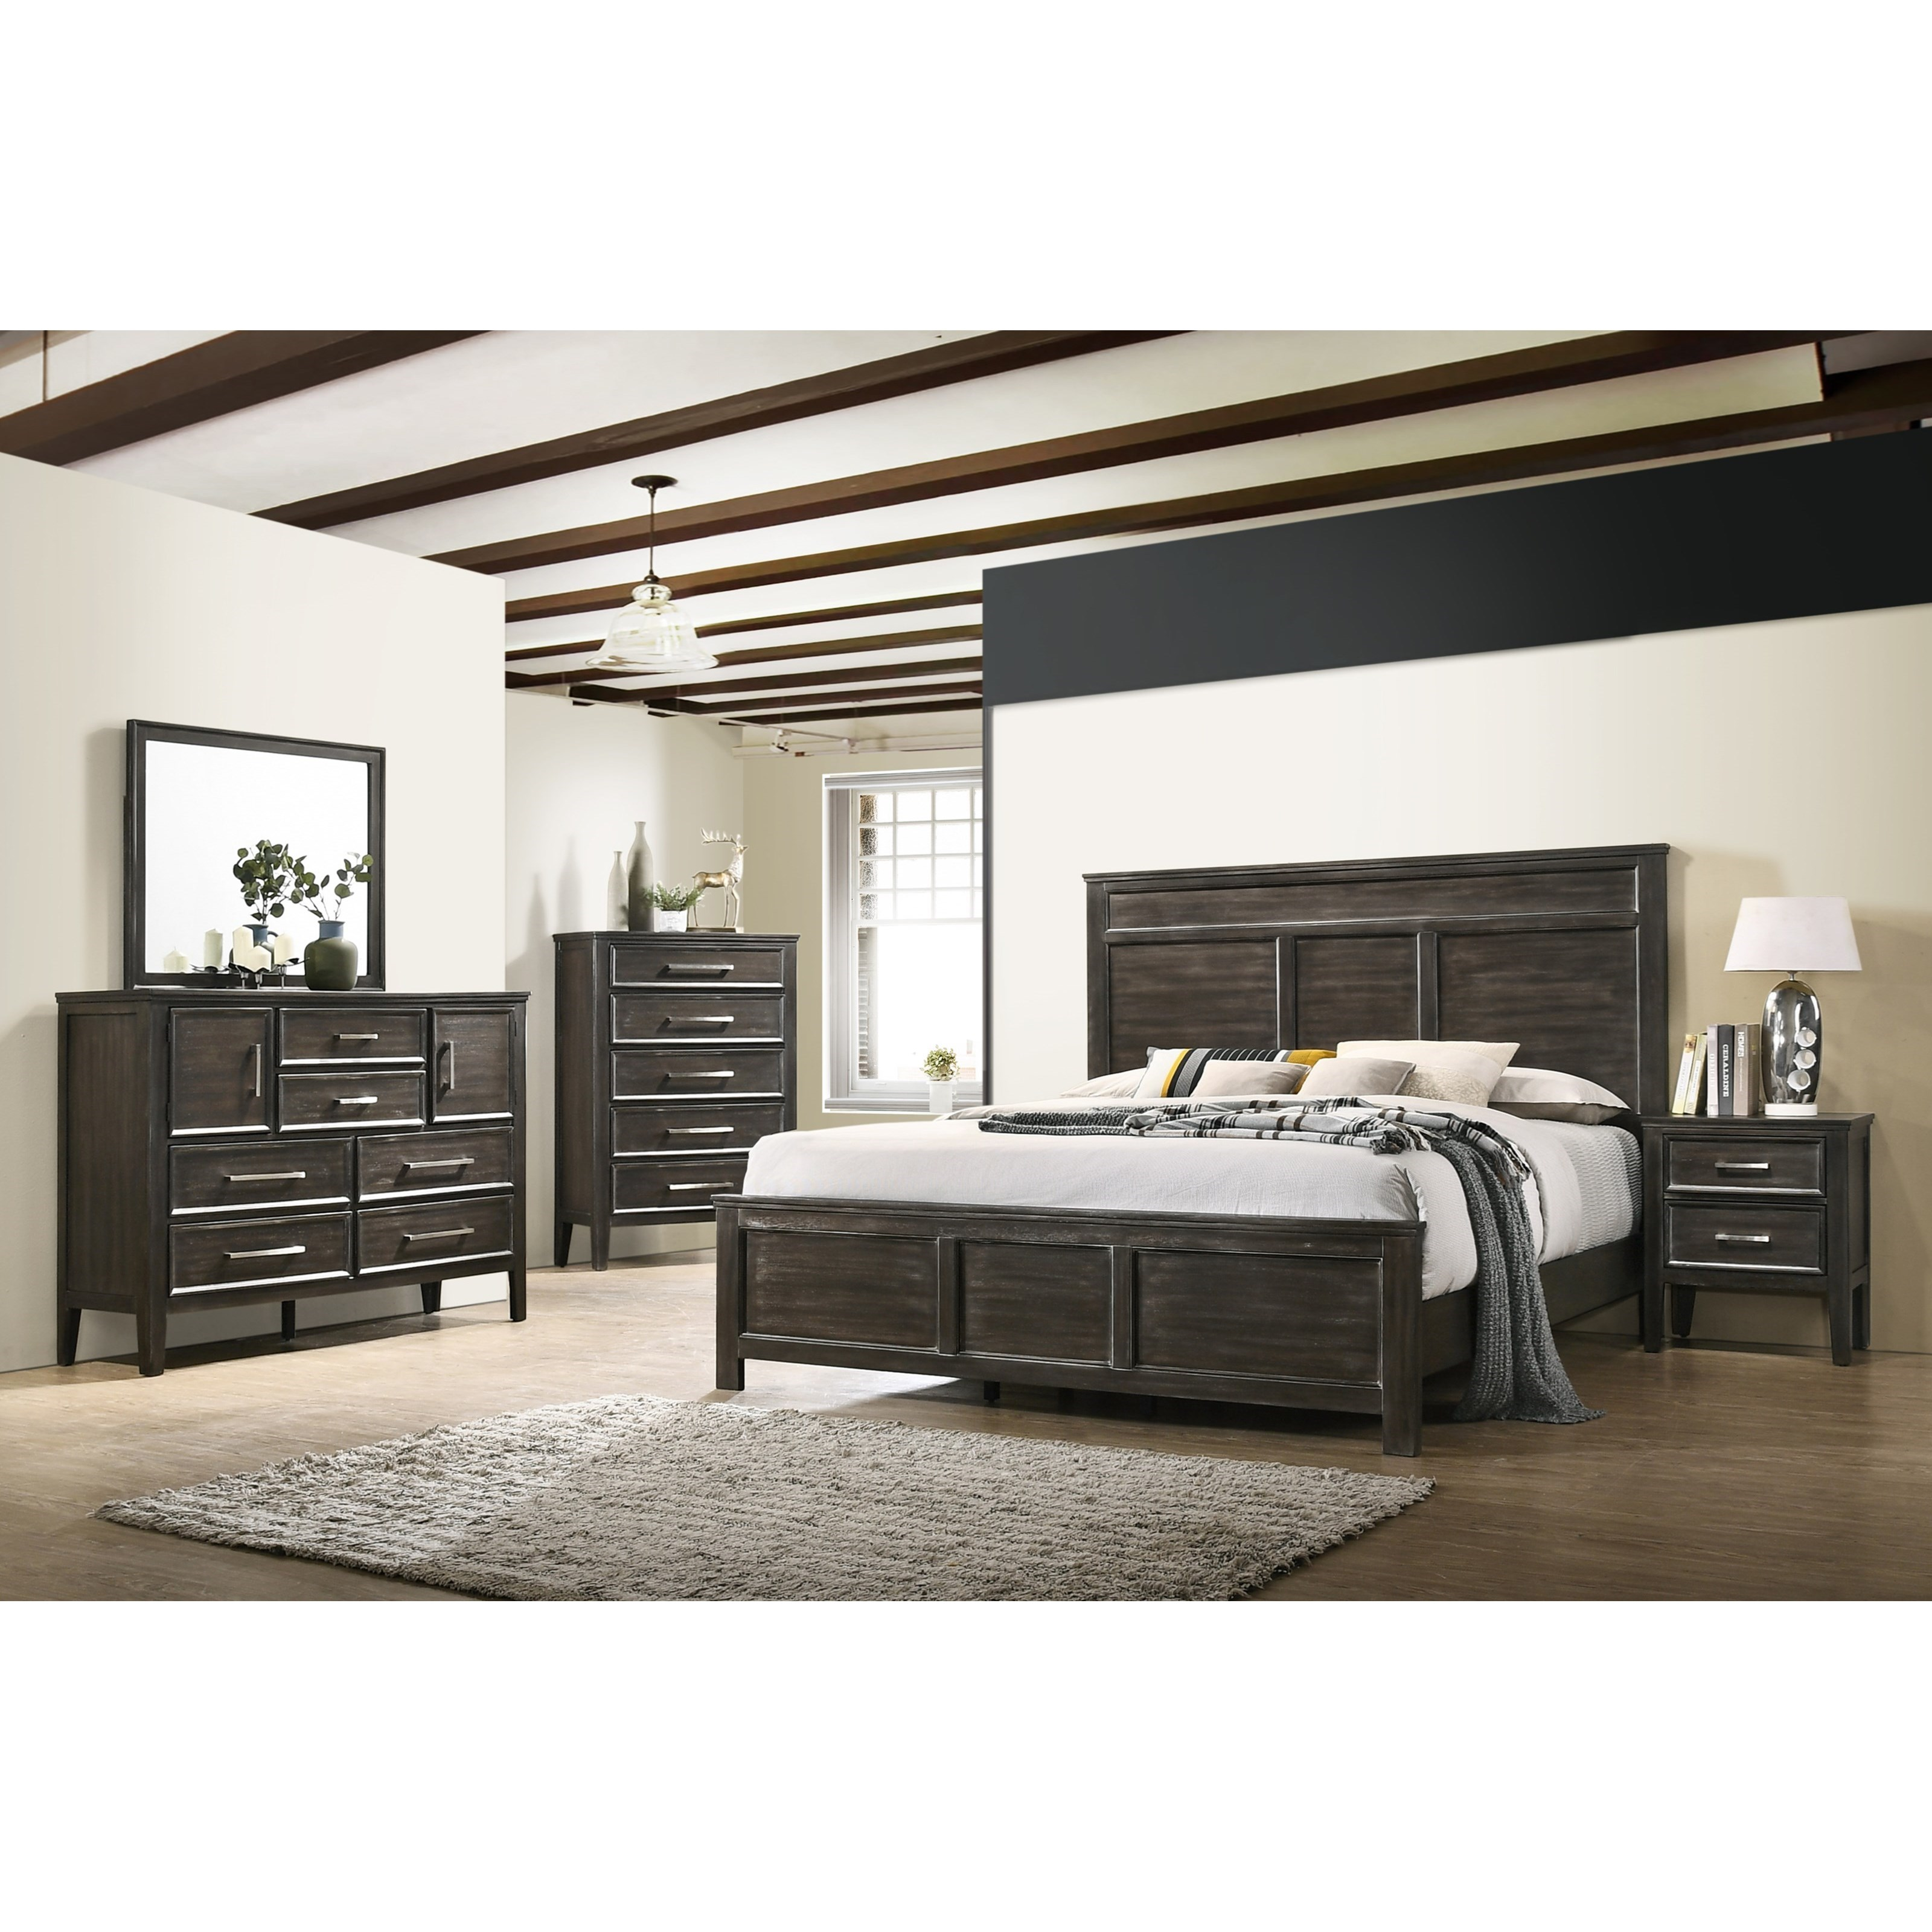 Andover Full Bedroom Group by New Classic at H.L. Stephens